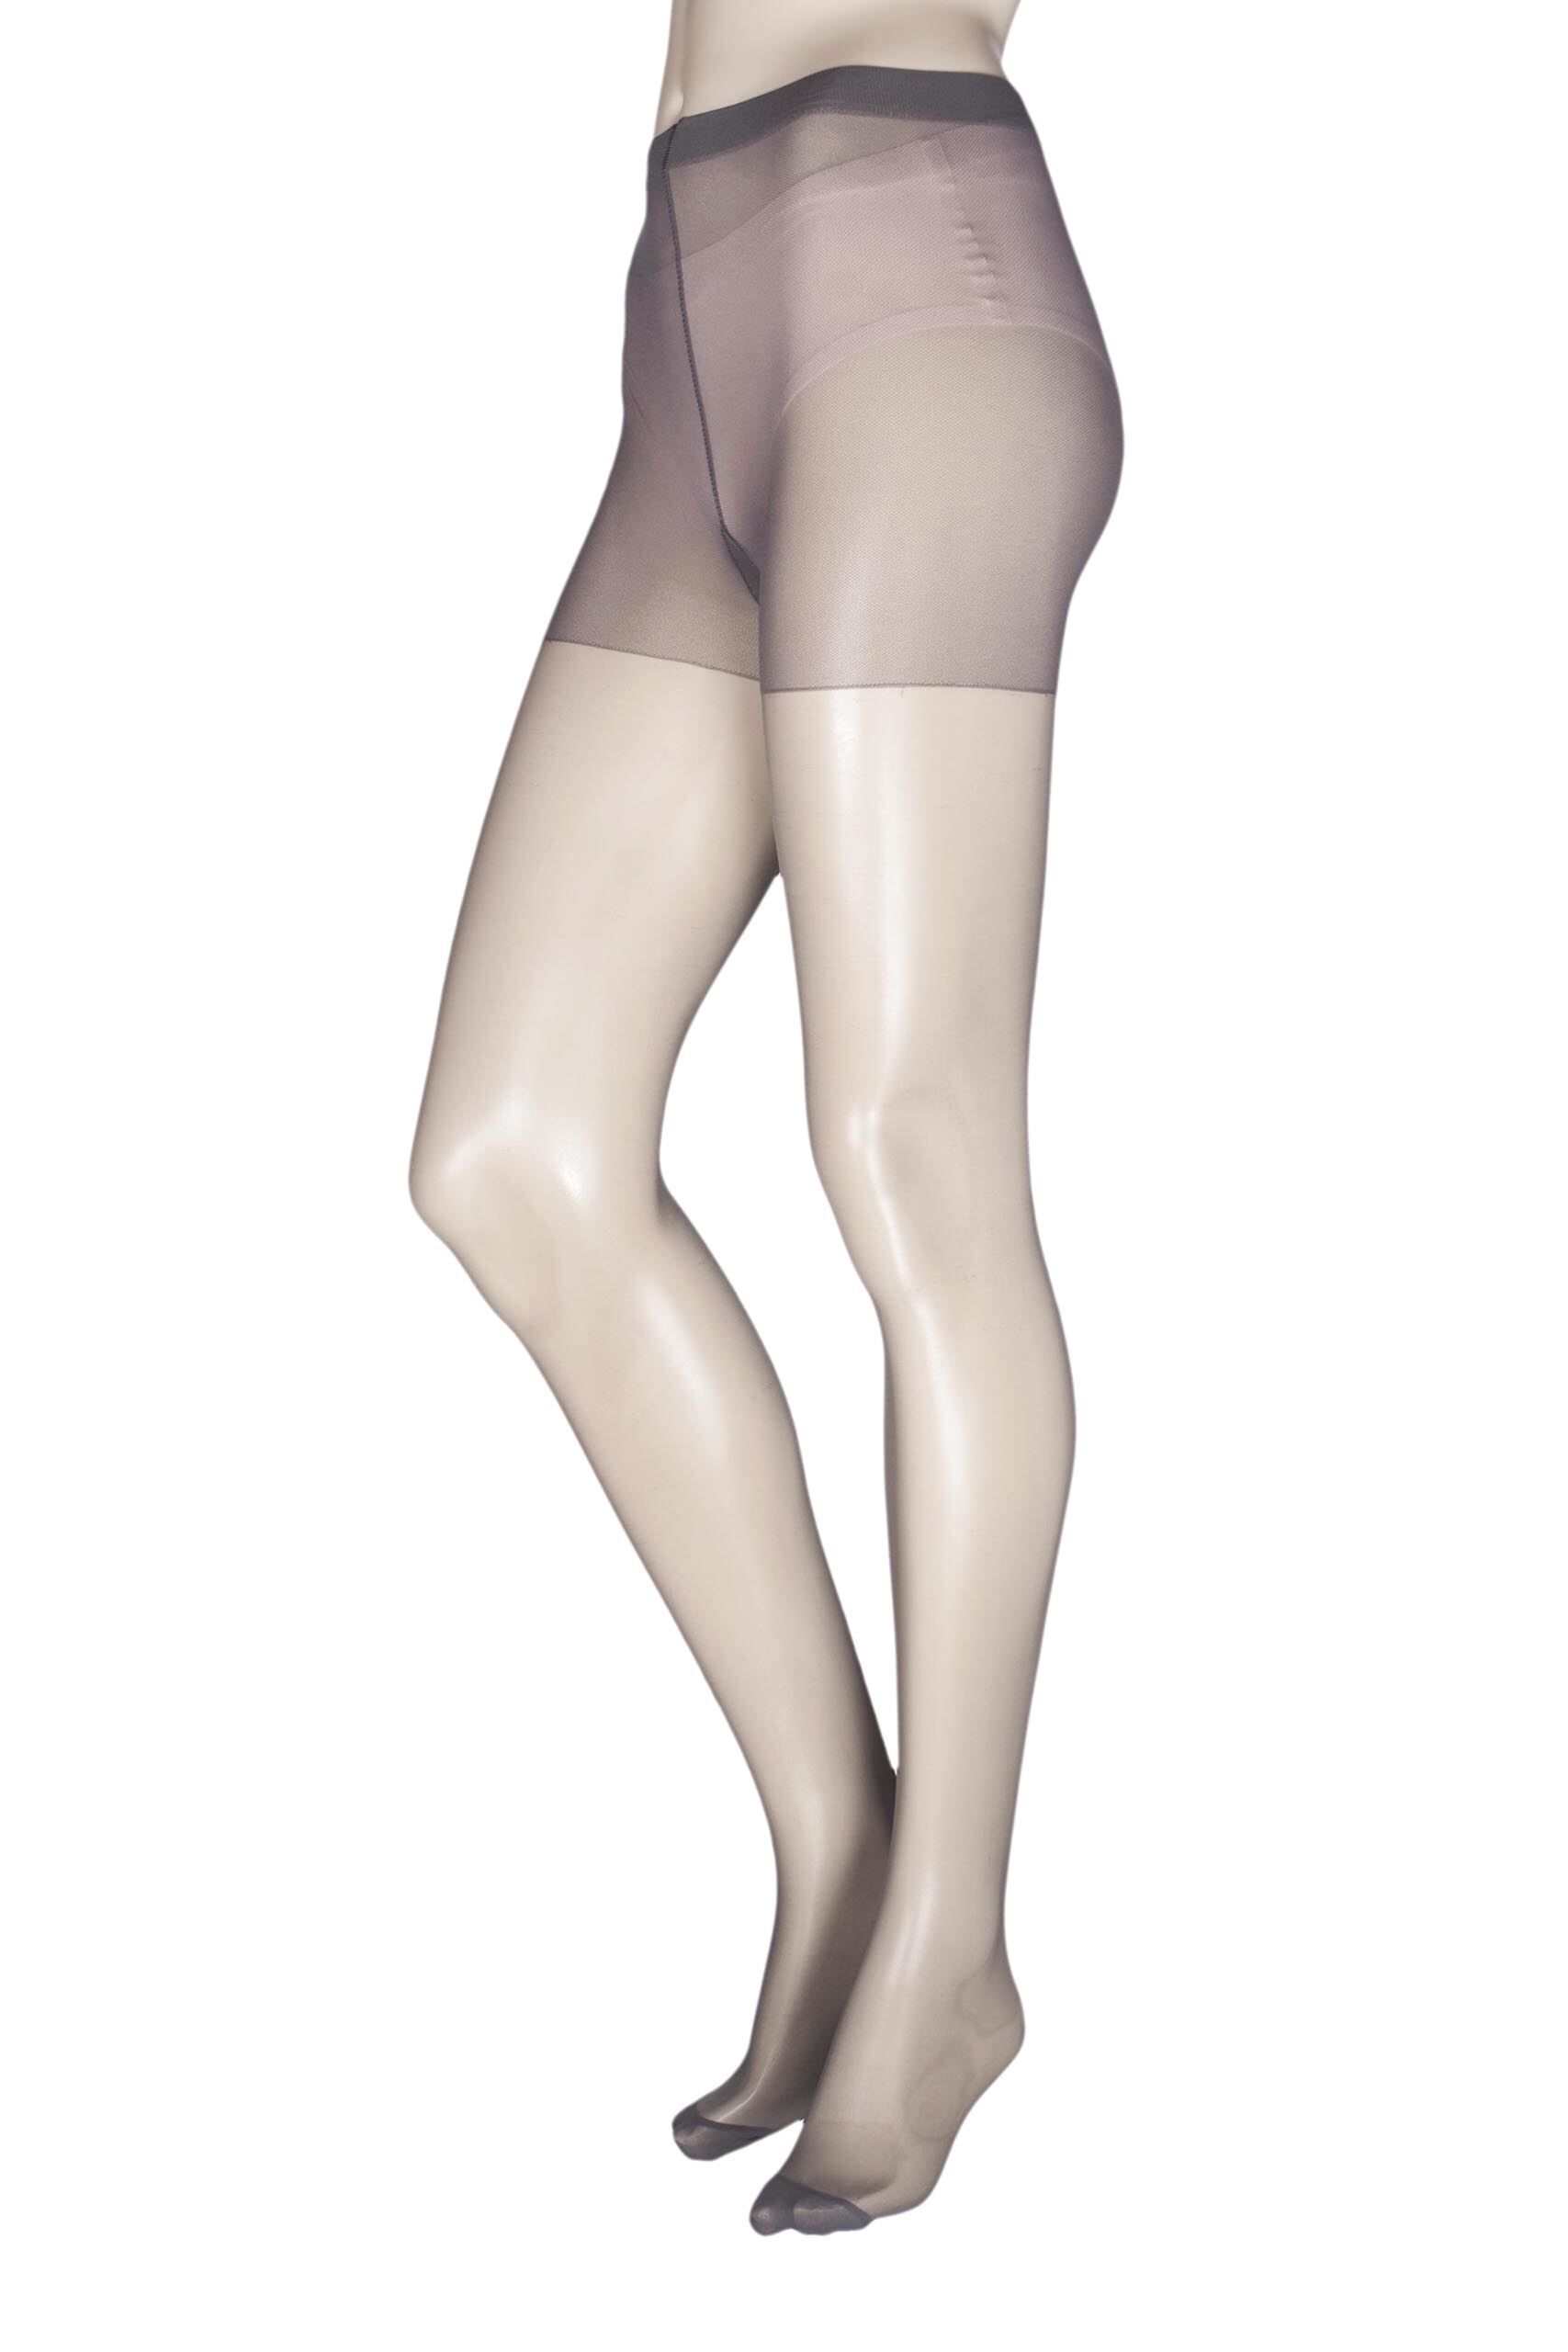 Image of 1 Pair Anthracite Class Tights Ladies Extra Tall - Levante